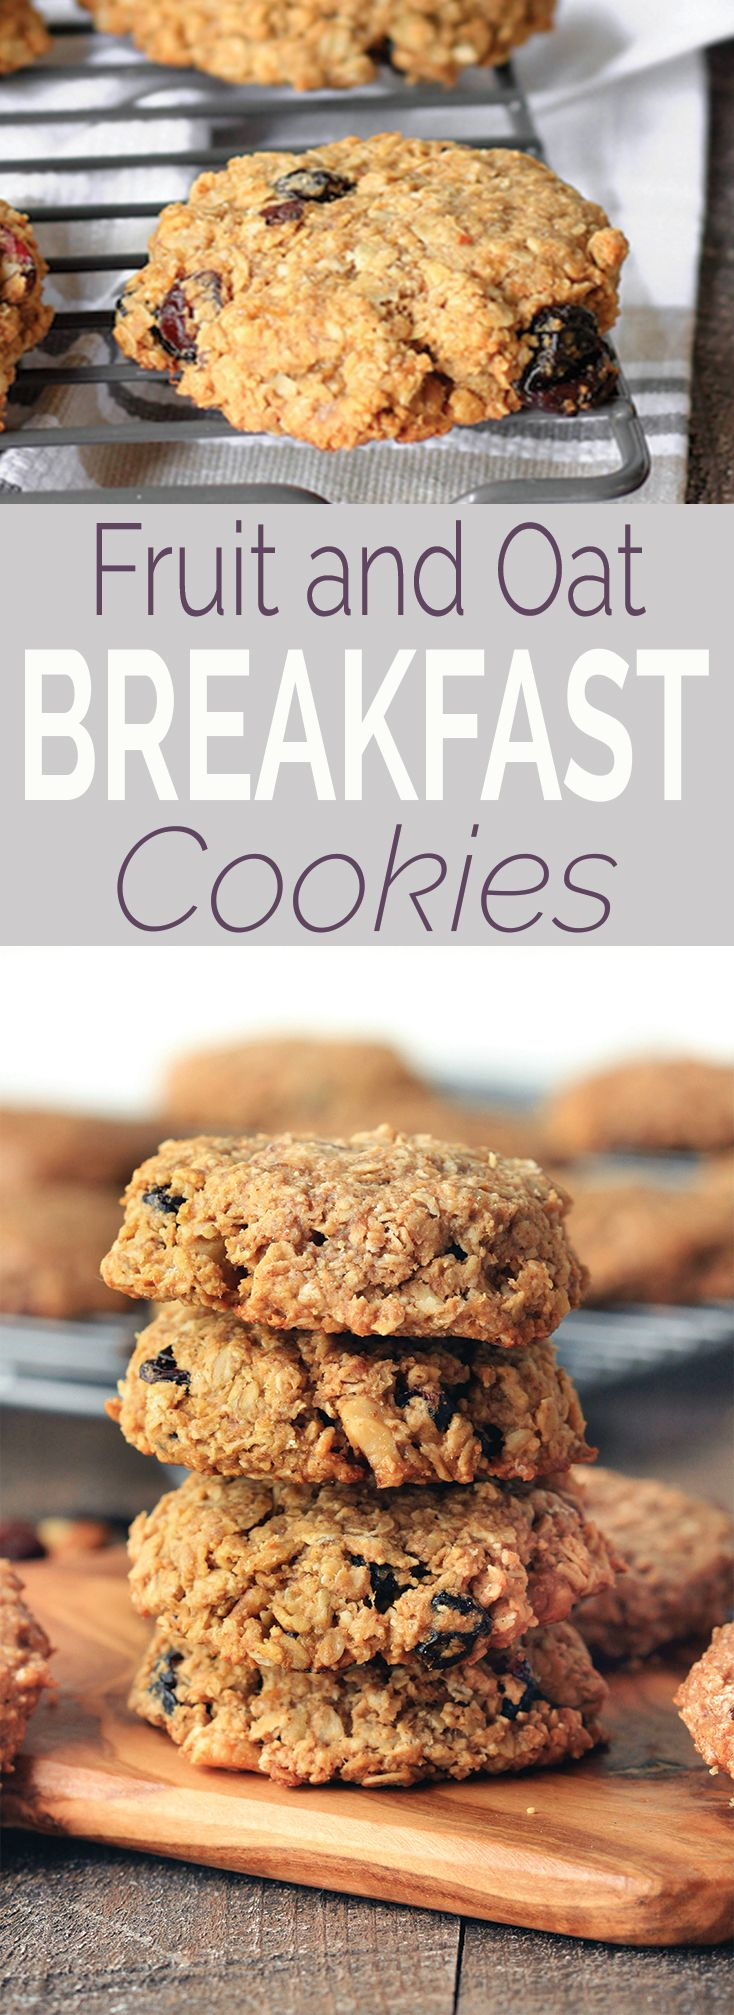 Healthy fruit and oat breakfast cookies (freezer-friendly) are simple to make, requiring only 1 bowl and 10 ingredients. Vegan, gluten-free, perfectly sweet and chewy, and the perfect snack or on-the-go-breakfast. #BRMOats #Ad @bobsredmill via @Simply Sissom